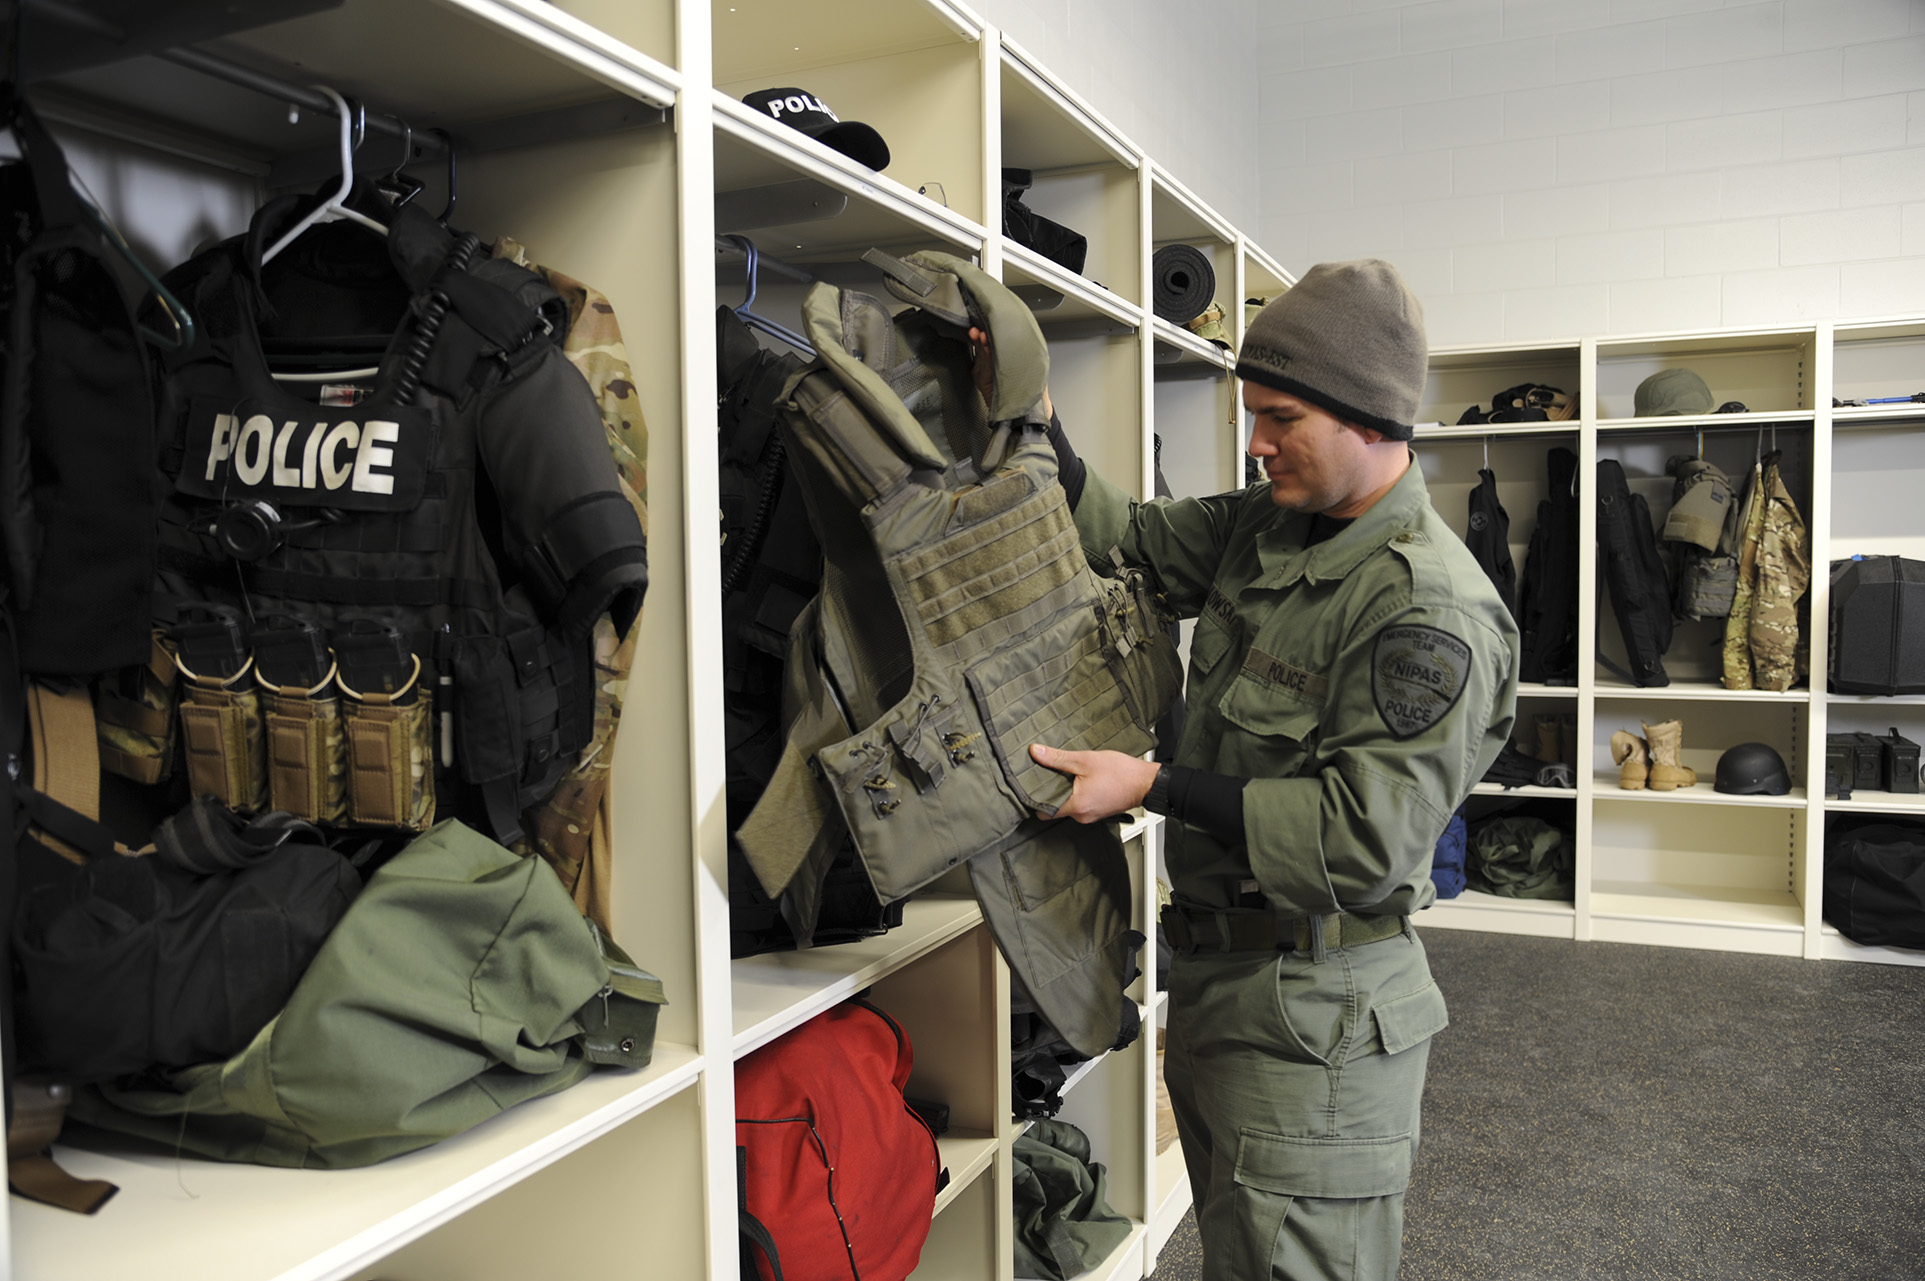 custom heavy duty lockers assist with police tactical gear storage